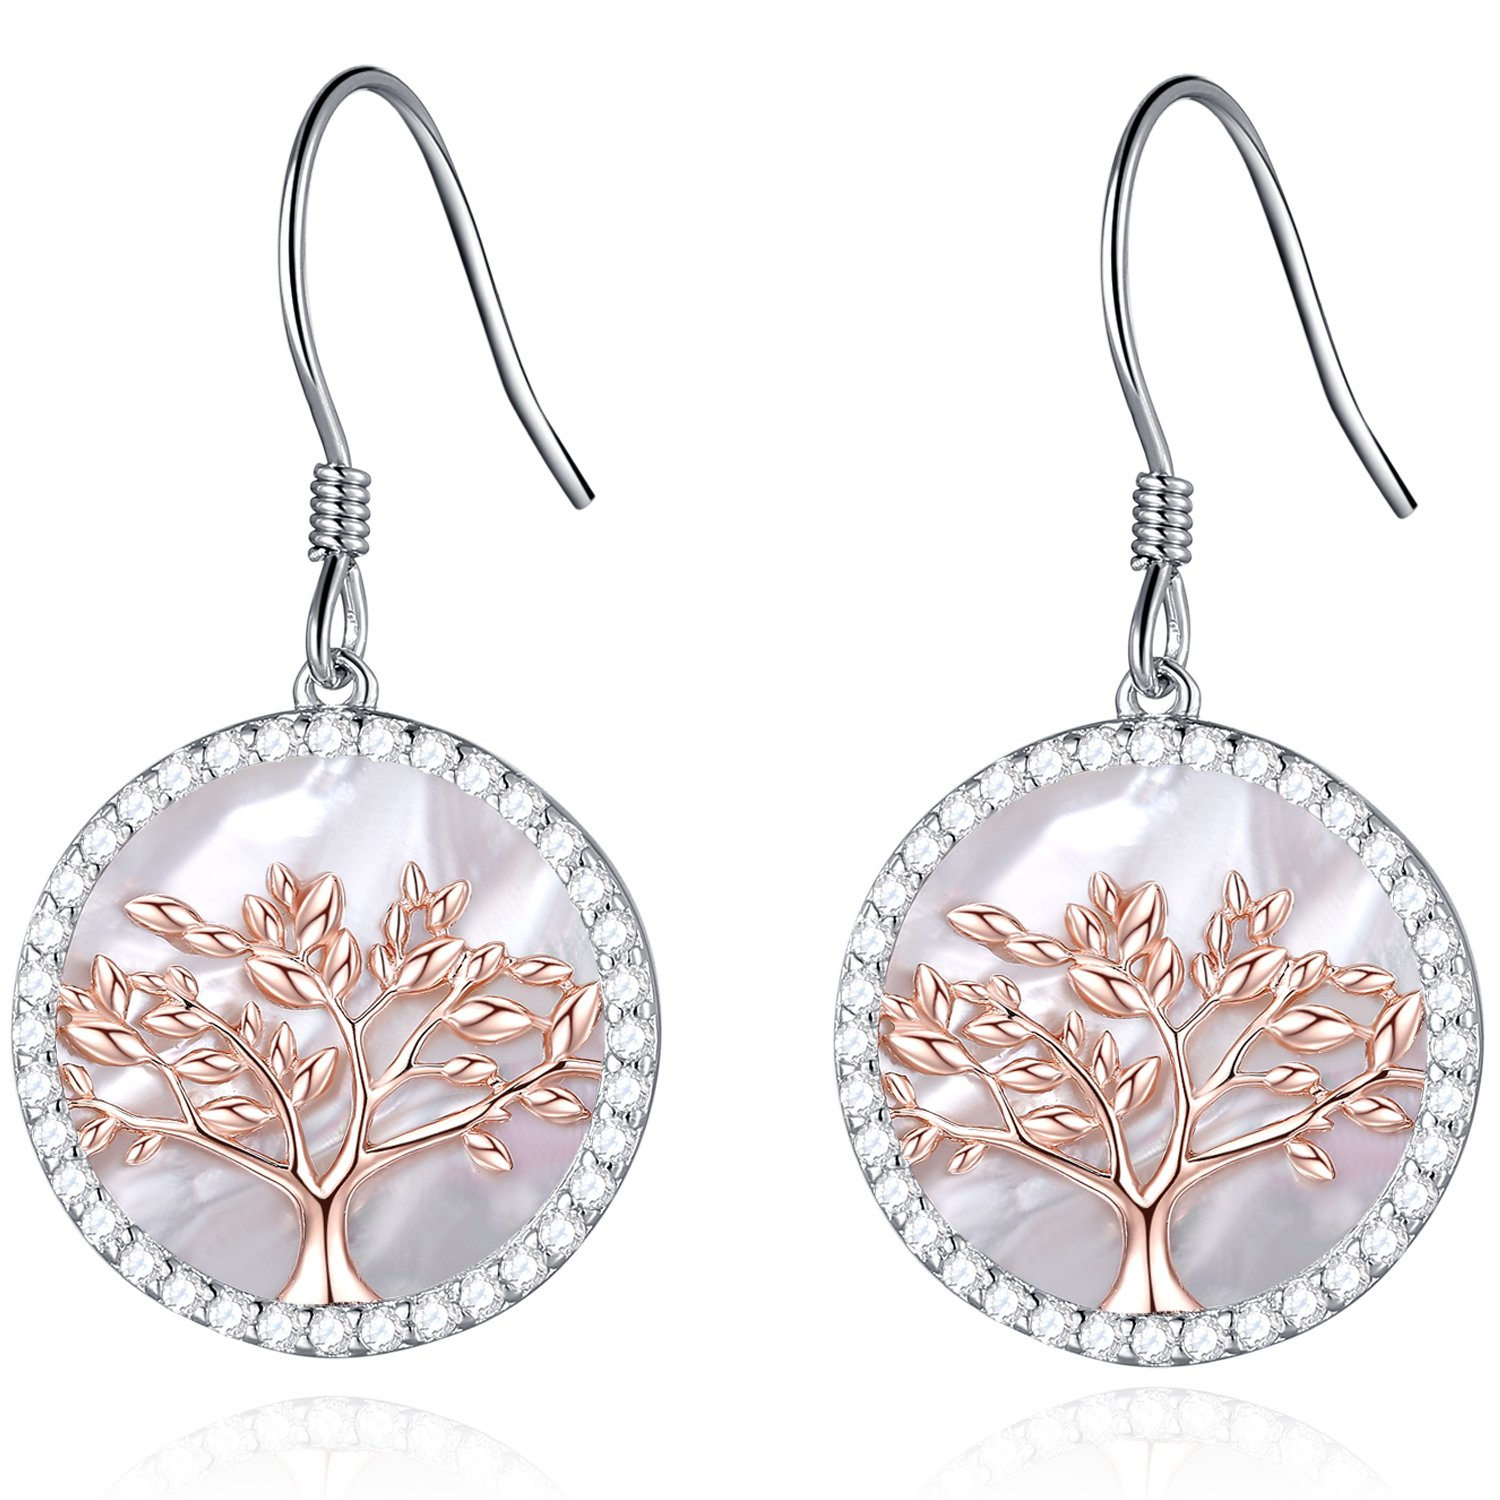 MEGACHIC Women Tree of Life Women's Sterling Silver Mother of Pearl Drop Earrings Crystals from Swarovski